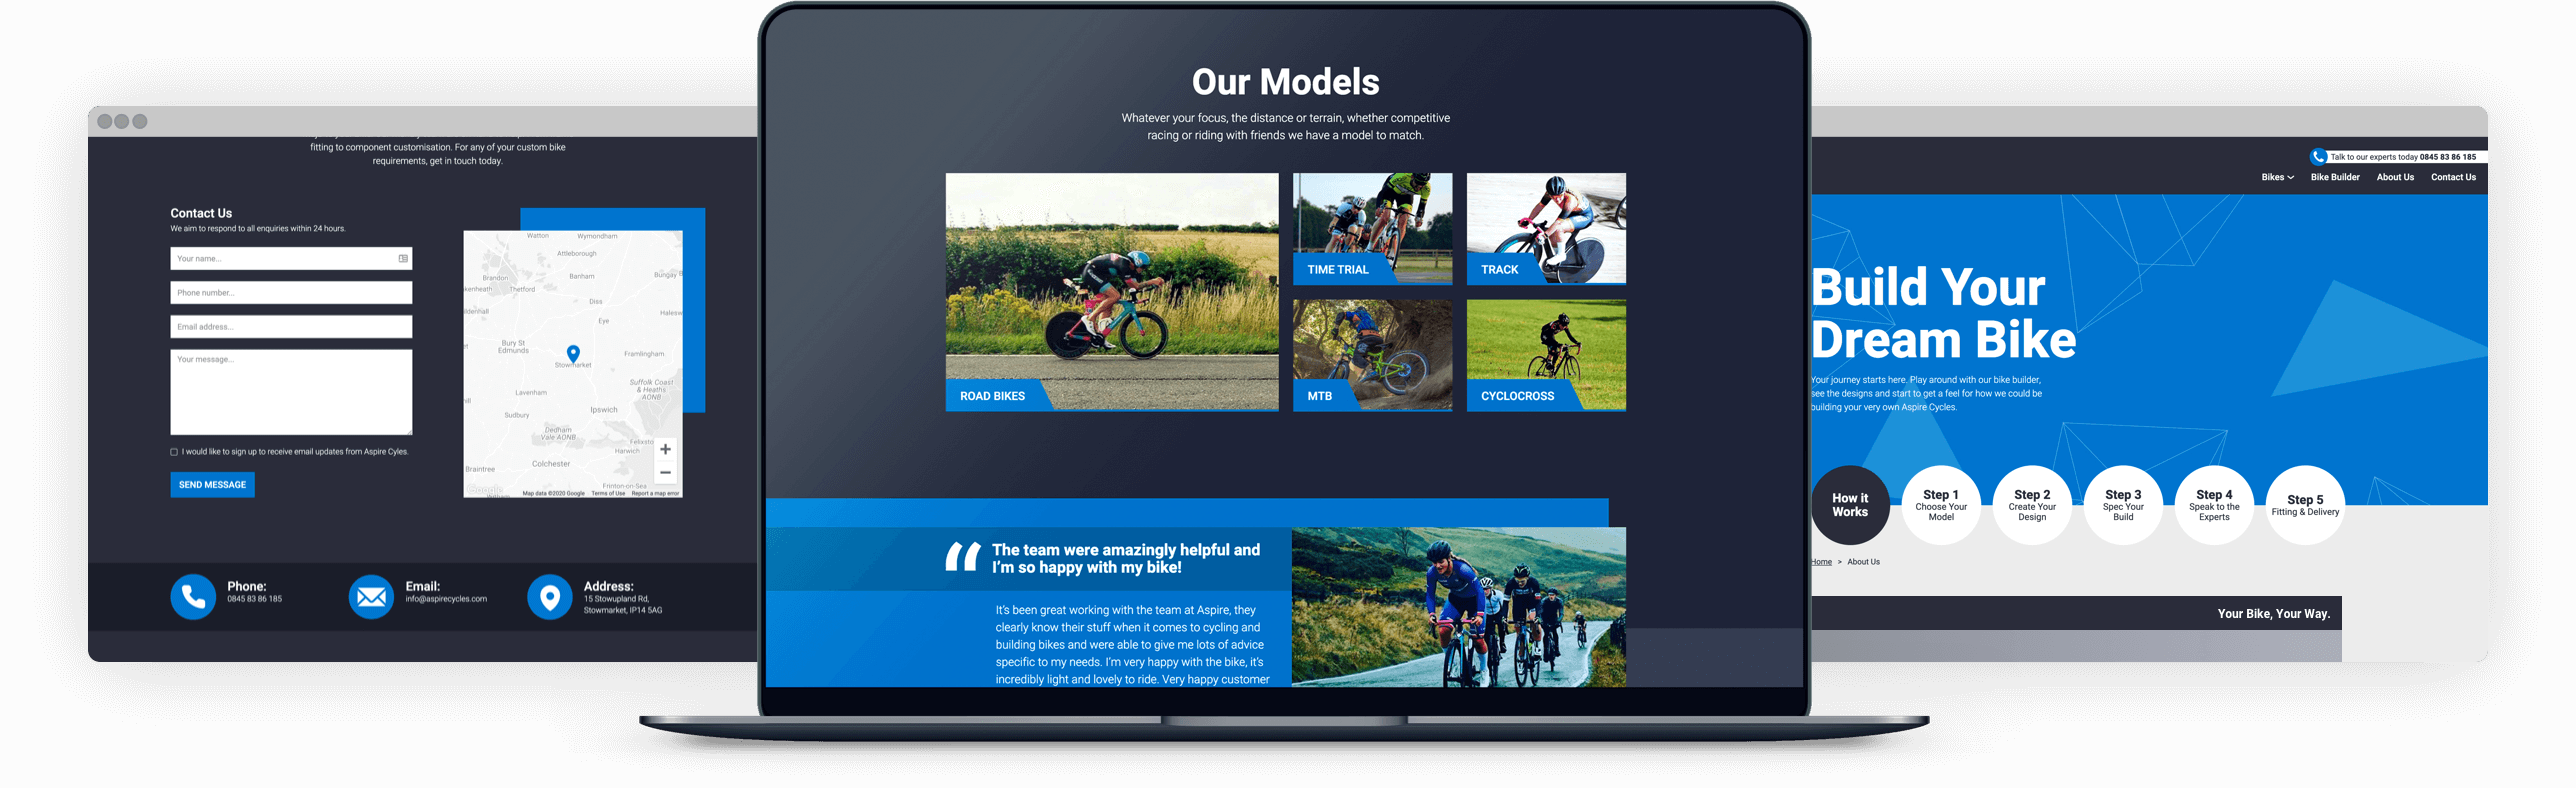 Aspire Cycles website on laptop